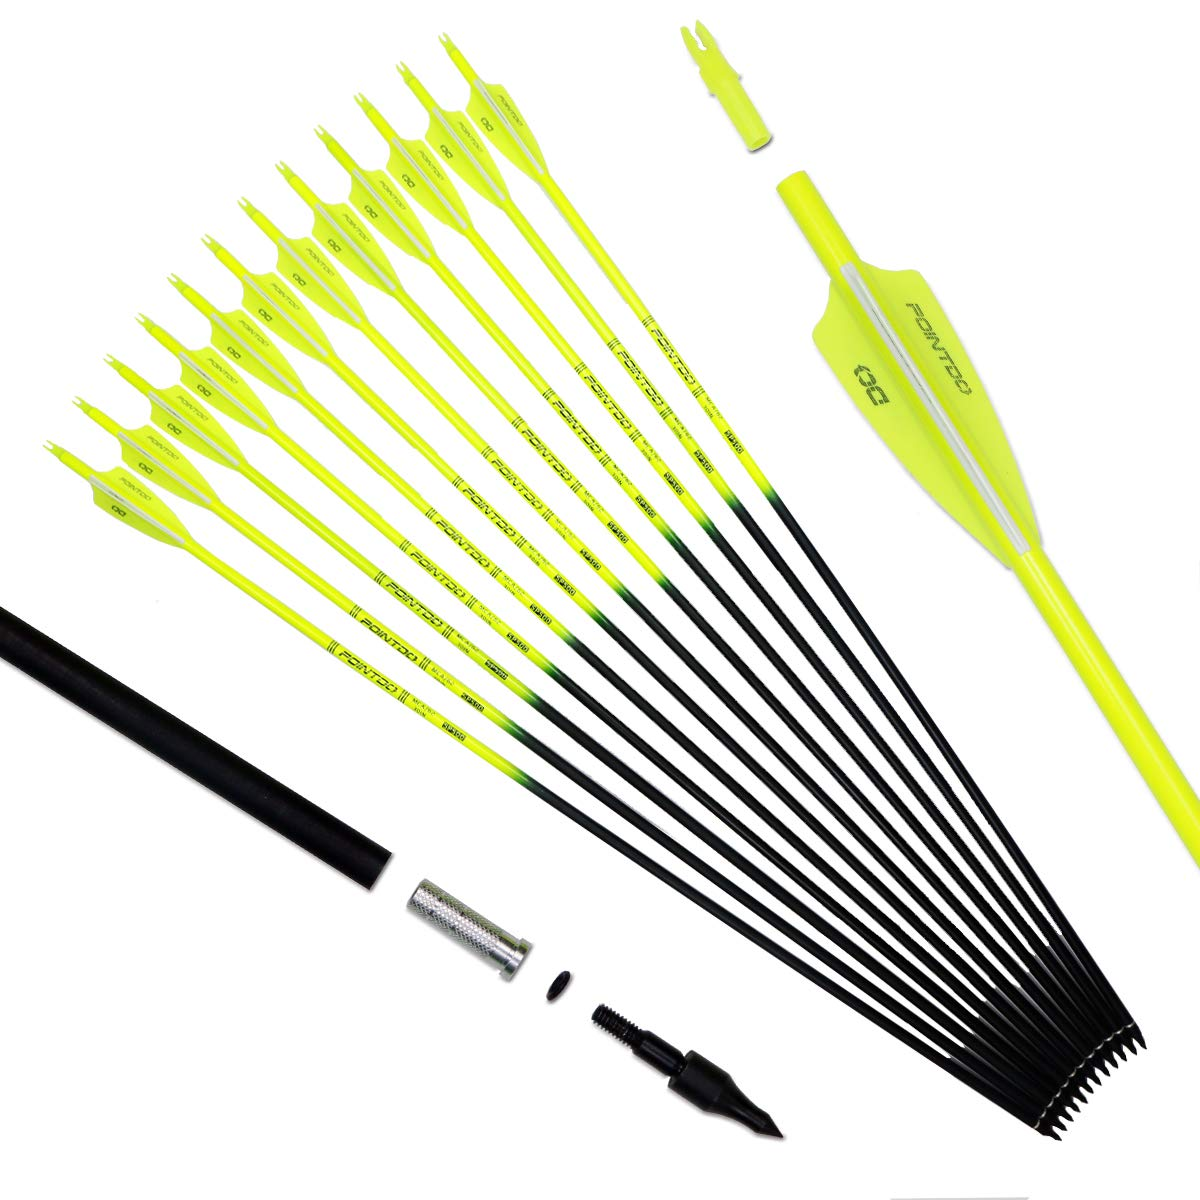 Pointdo 30inch Carbon Arrow Fluorescence Color Targeting and Hunting Practice Arrows for Compound Bow and Recurve Bow with Removable Tips (Fluorescein Yellow) by Pointdo